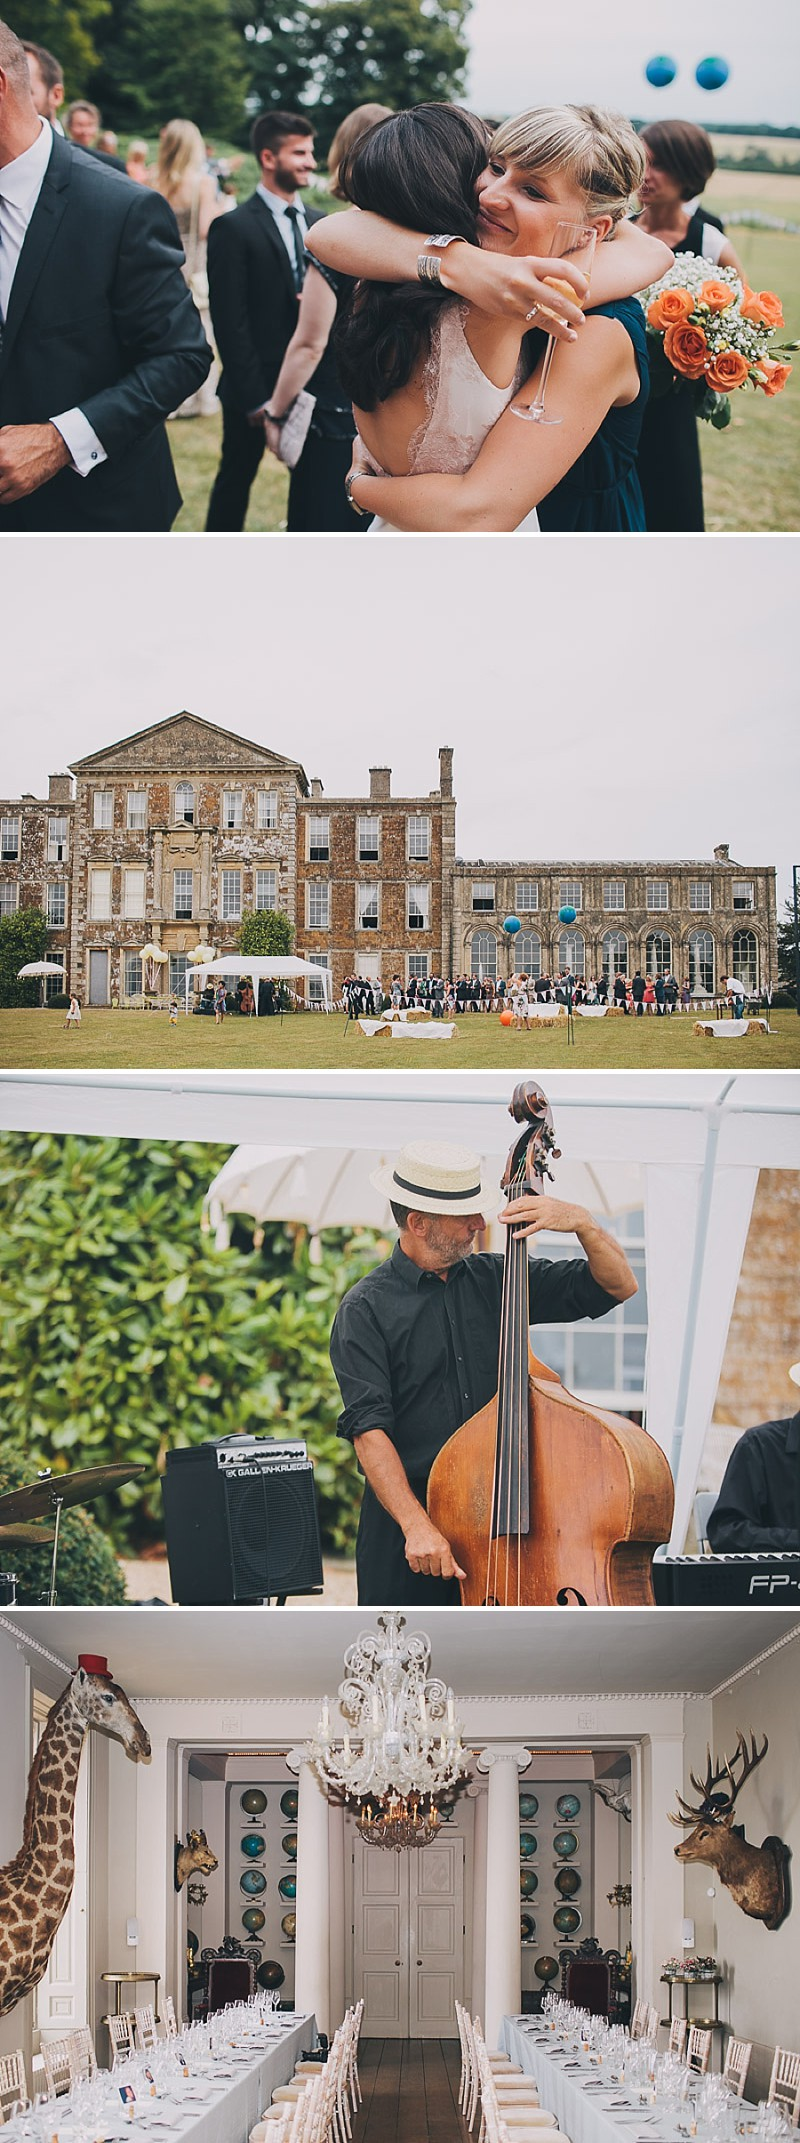 A contemporary wedding at an unusual wedding venue Aynhoe Park with taxidermy decor and dress by Emily Garrod_0012